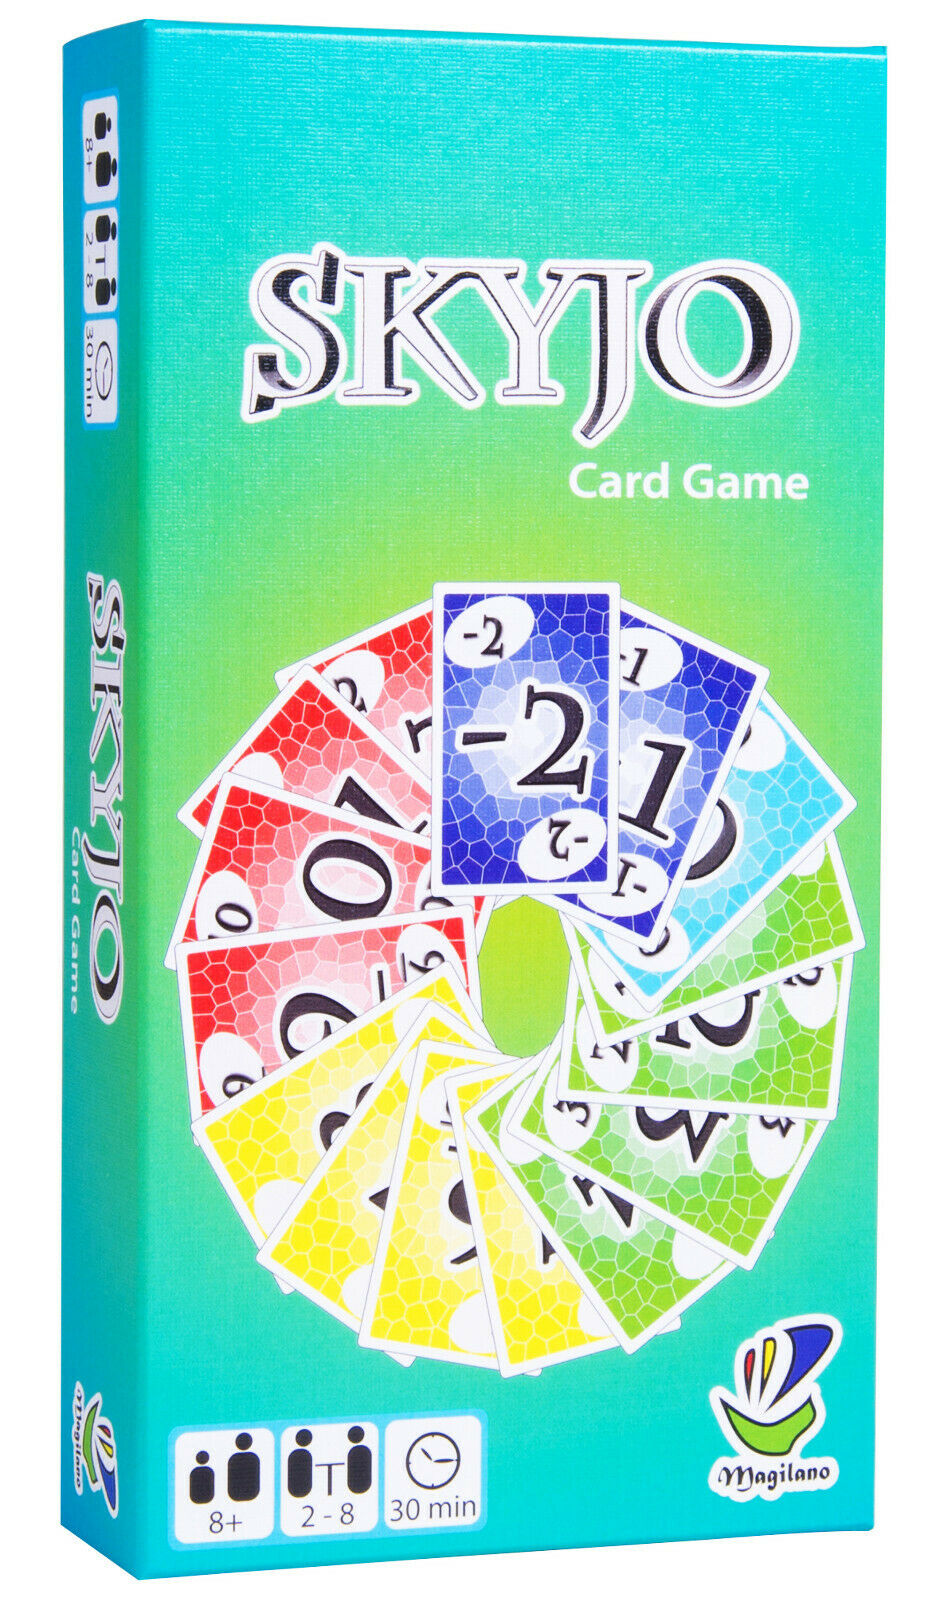 SKYJO, by MAGILANO - The entertaining card game for kids and adults.